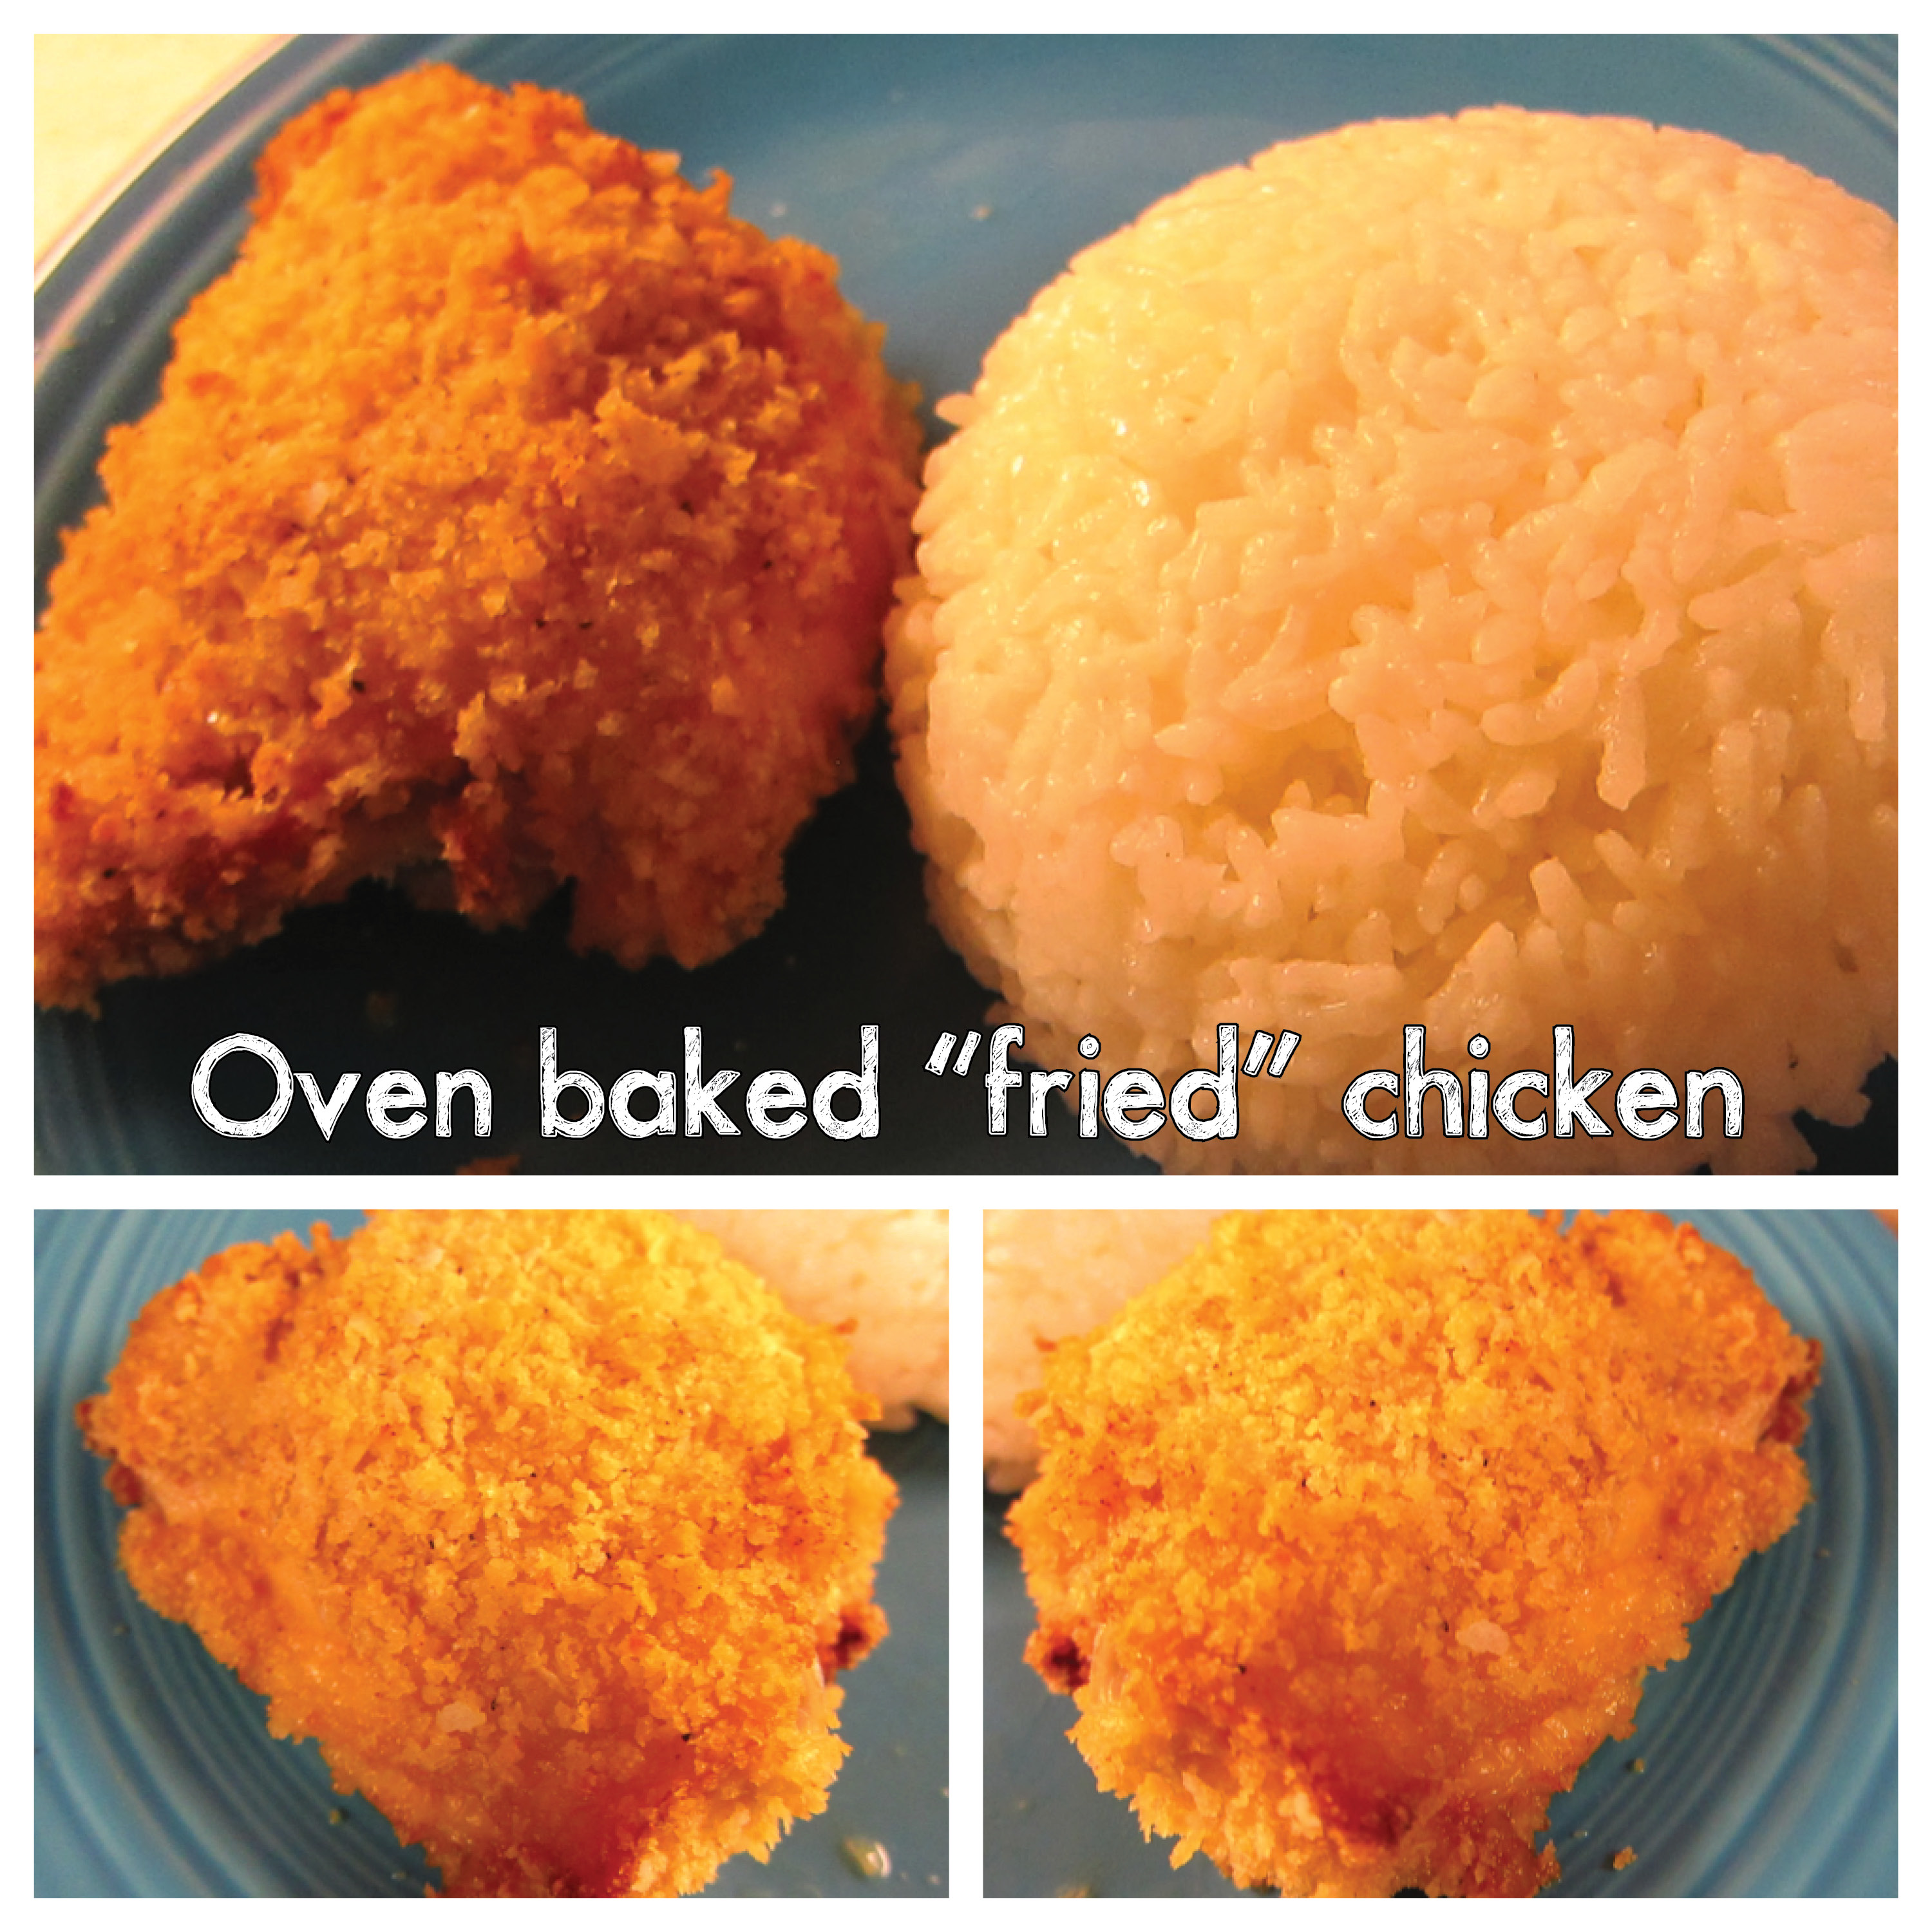 Oven Baked Fried Chicken | Mommysavers